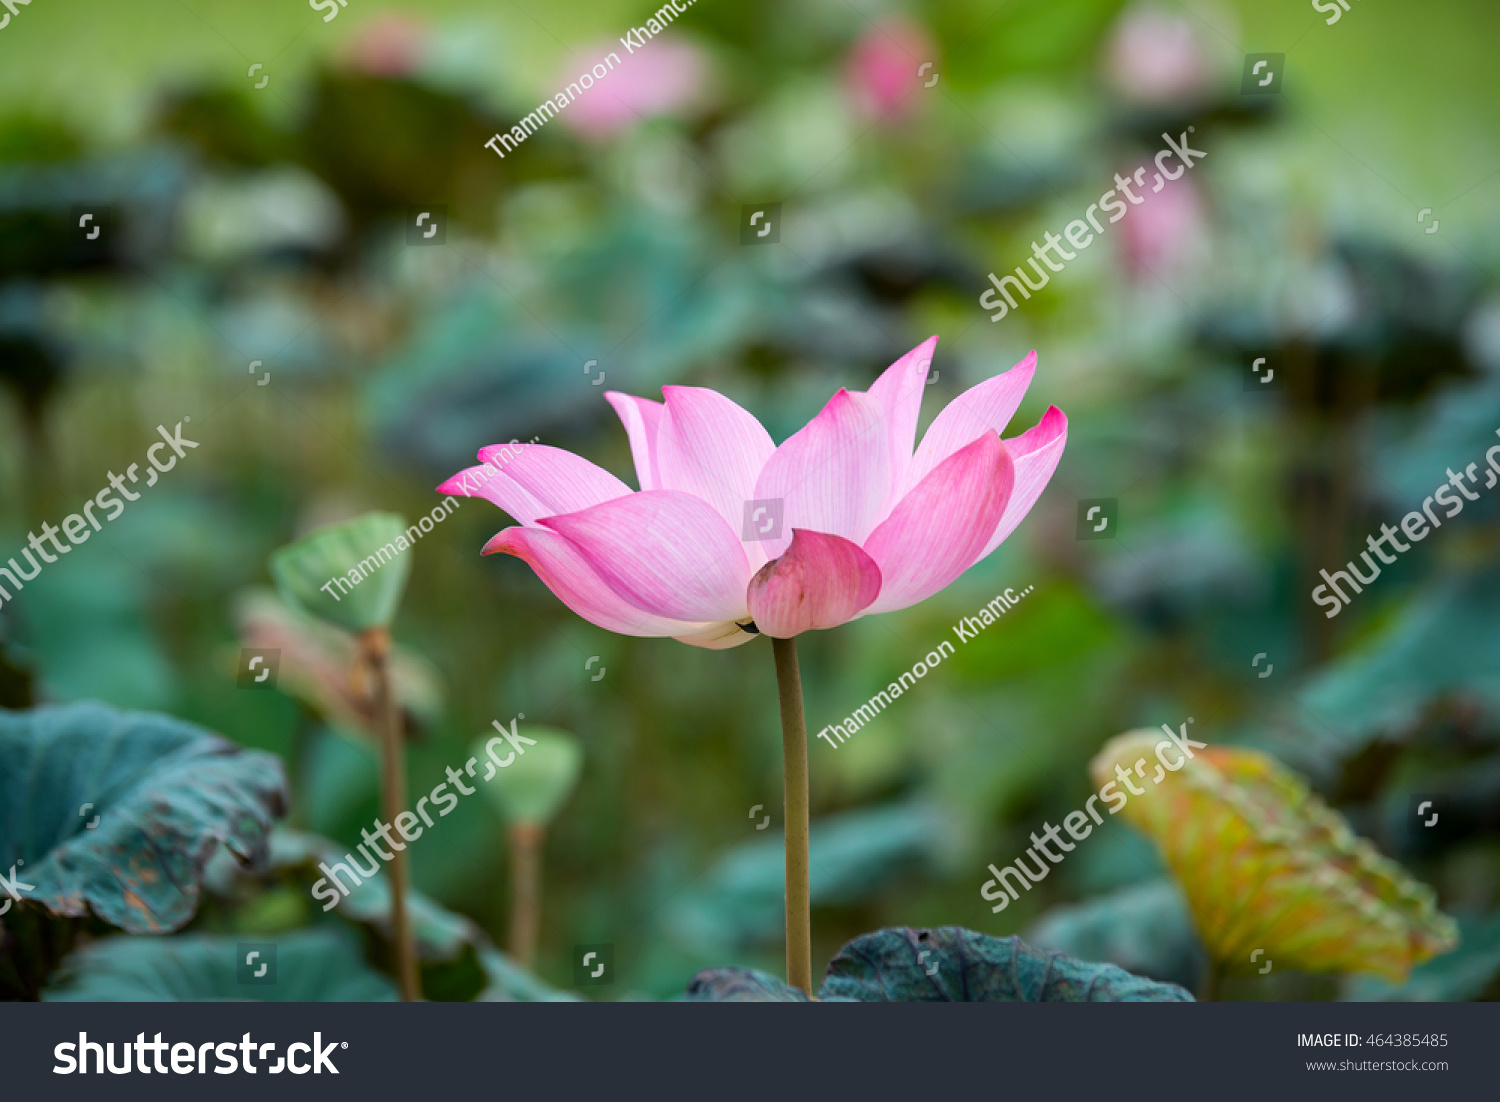 Lotusblossom lotus flower pondlotus blooming beautiful stock photo lotusblossom lotus flower in pondlotus blooming beautiful lotusbig lotus mightylinksfo Image collections